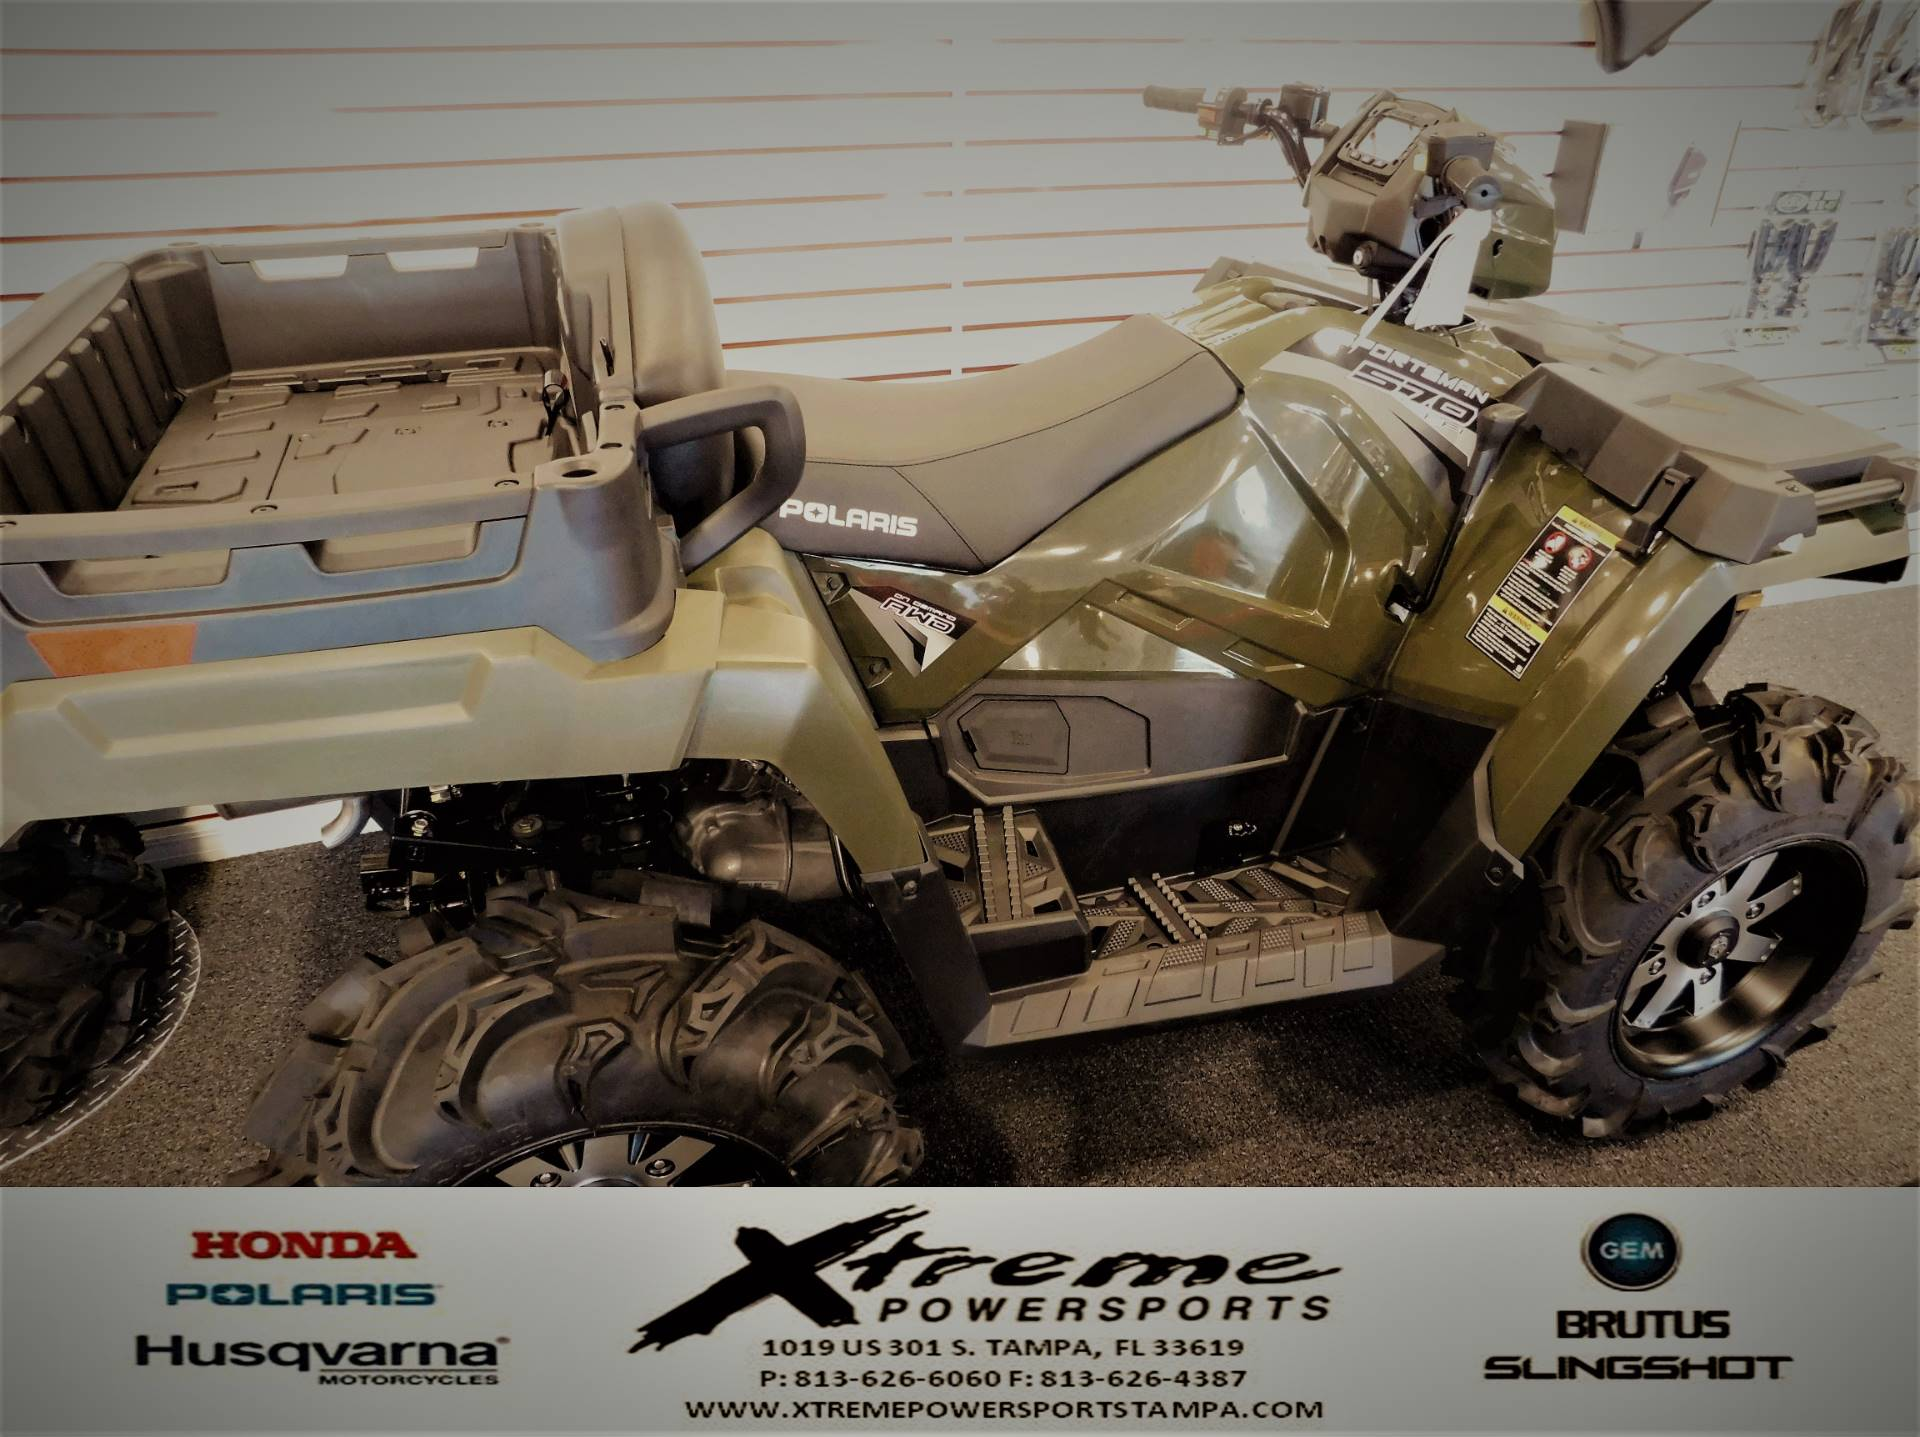 2019 Polaris SPORTSMAN 570 X2 in Tampa, Florida